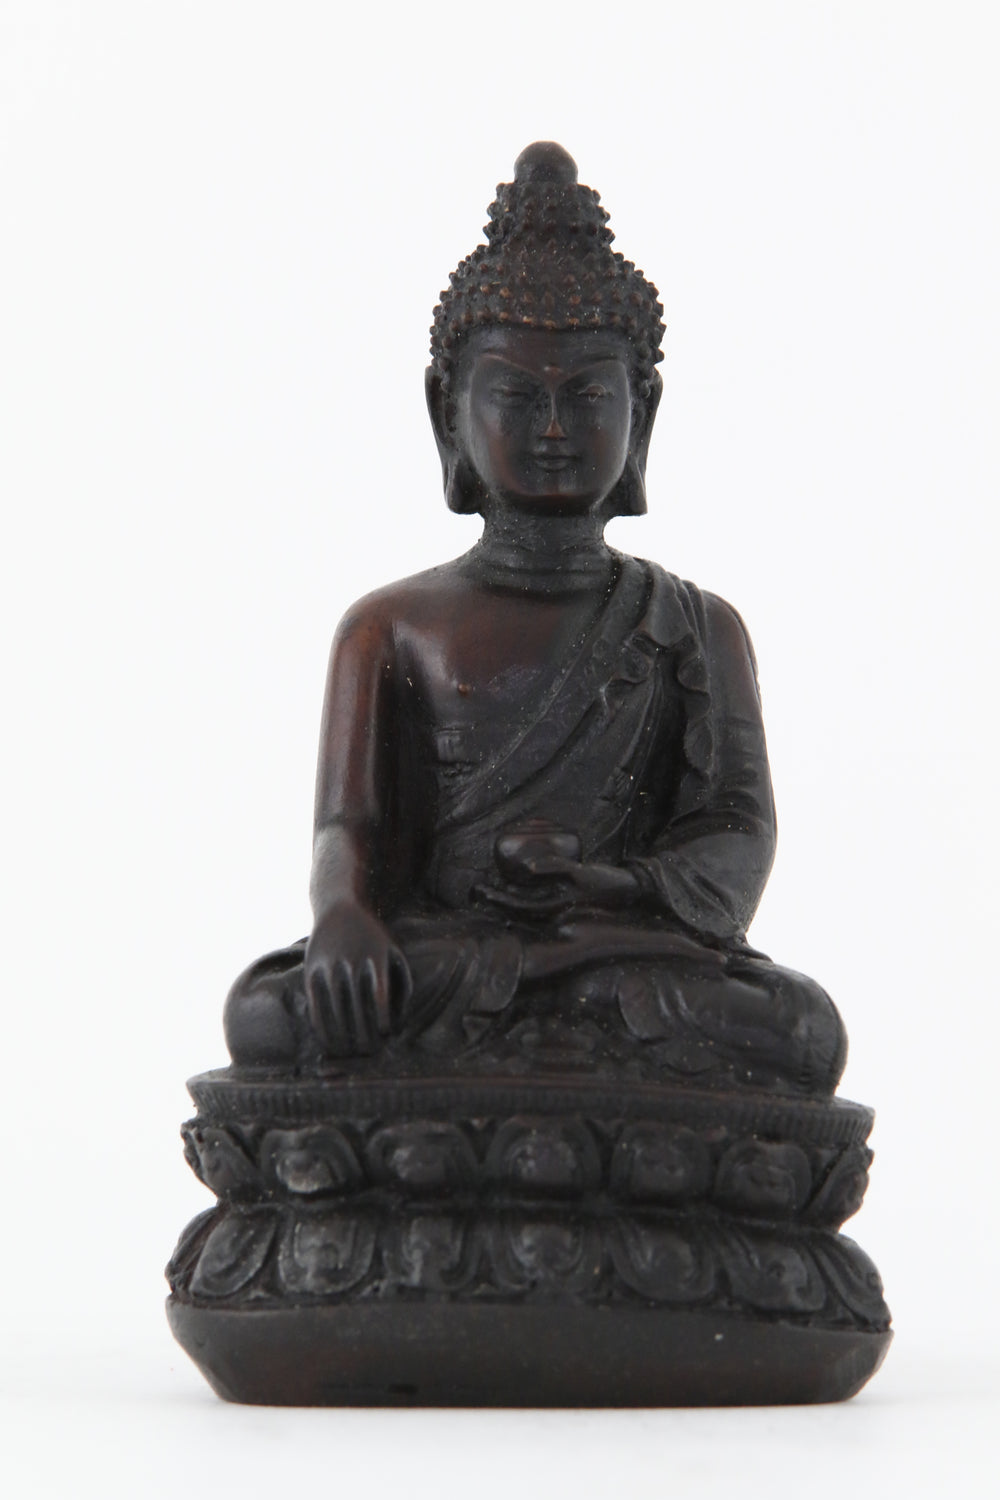 EARTH TOUCHING BUDDHA STATUE DARK SMALL FRONT VIEW